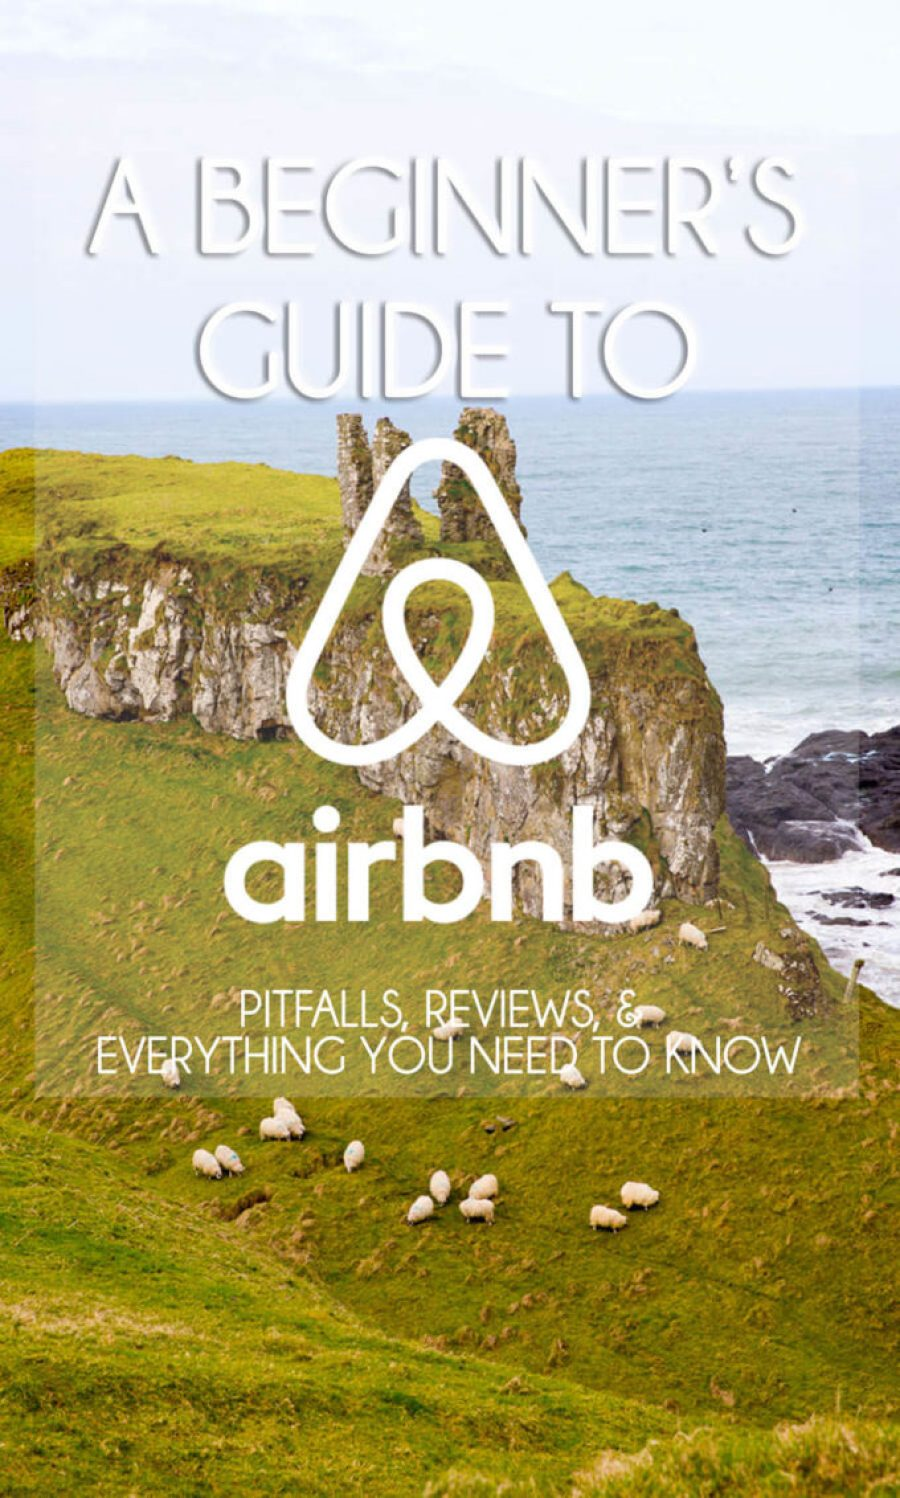 How to get an airbnb credit, and travel the world for less. Airbnb guide for beginners